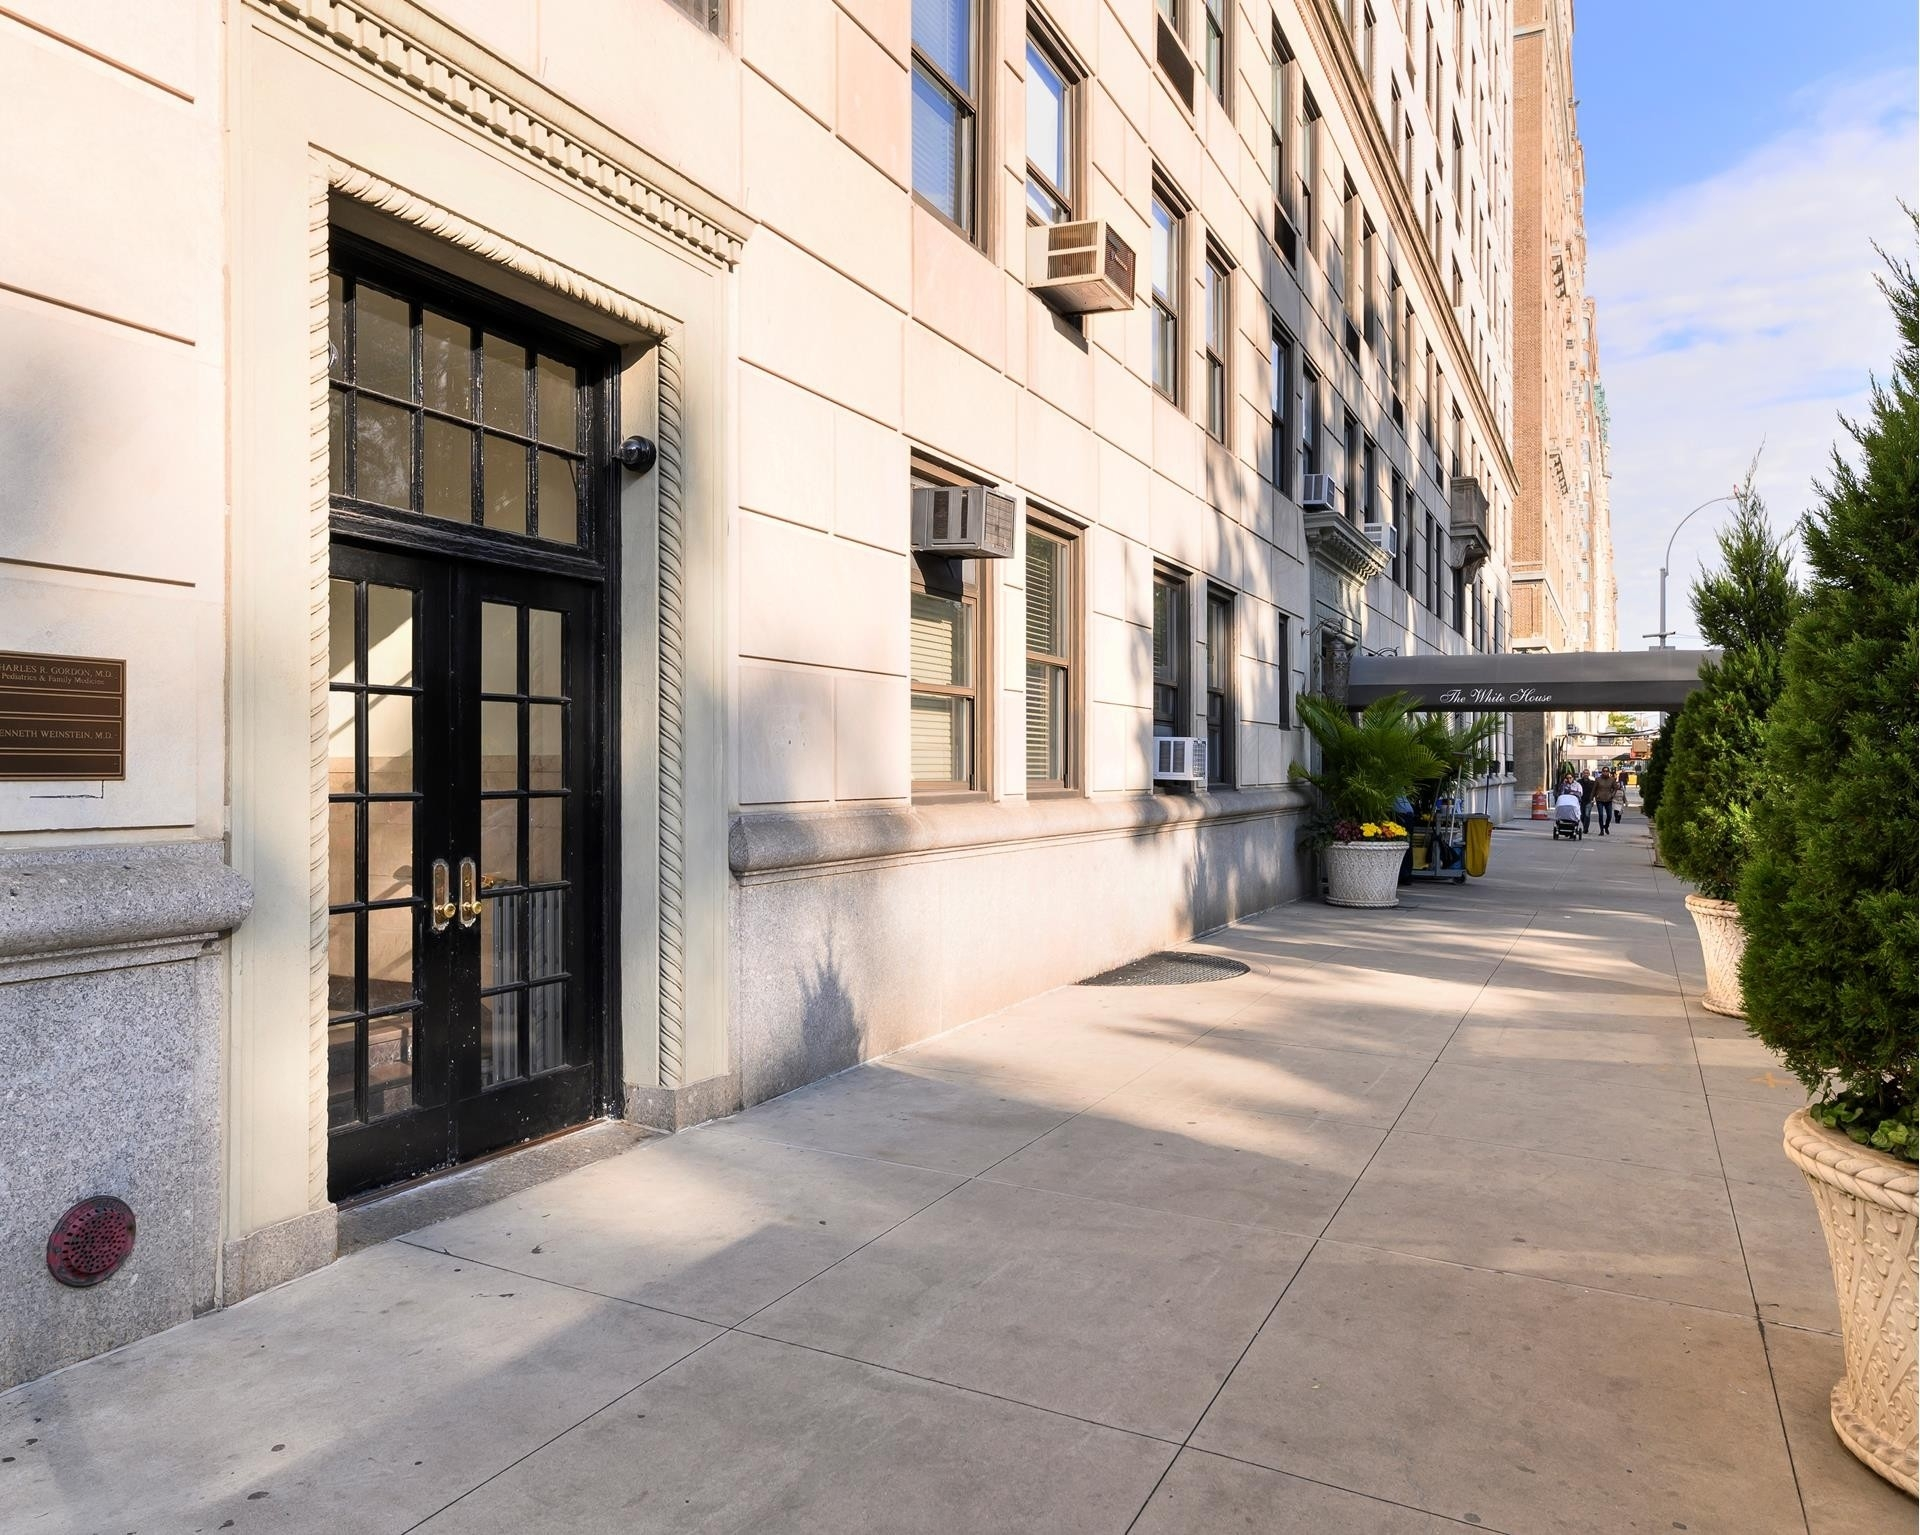 17. Co-op Properties for Sale at The White House, 262 Central Park West, PHS Upper West Side, New York, NY 10024